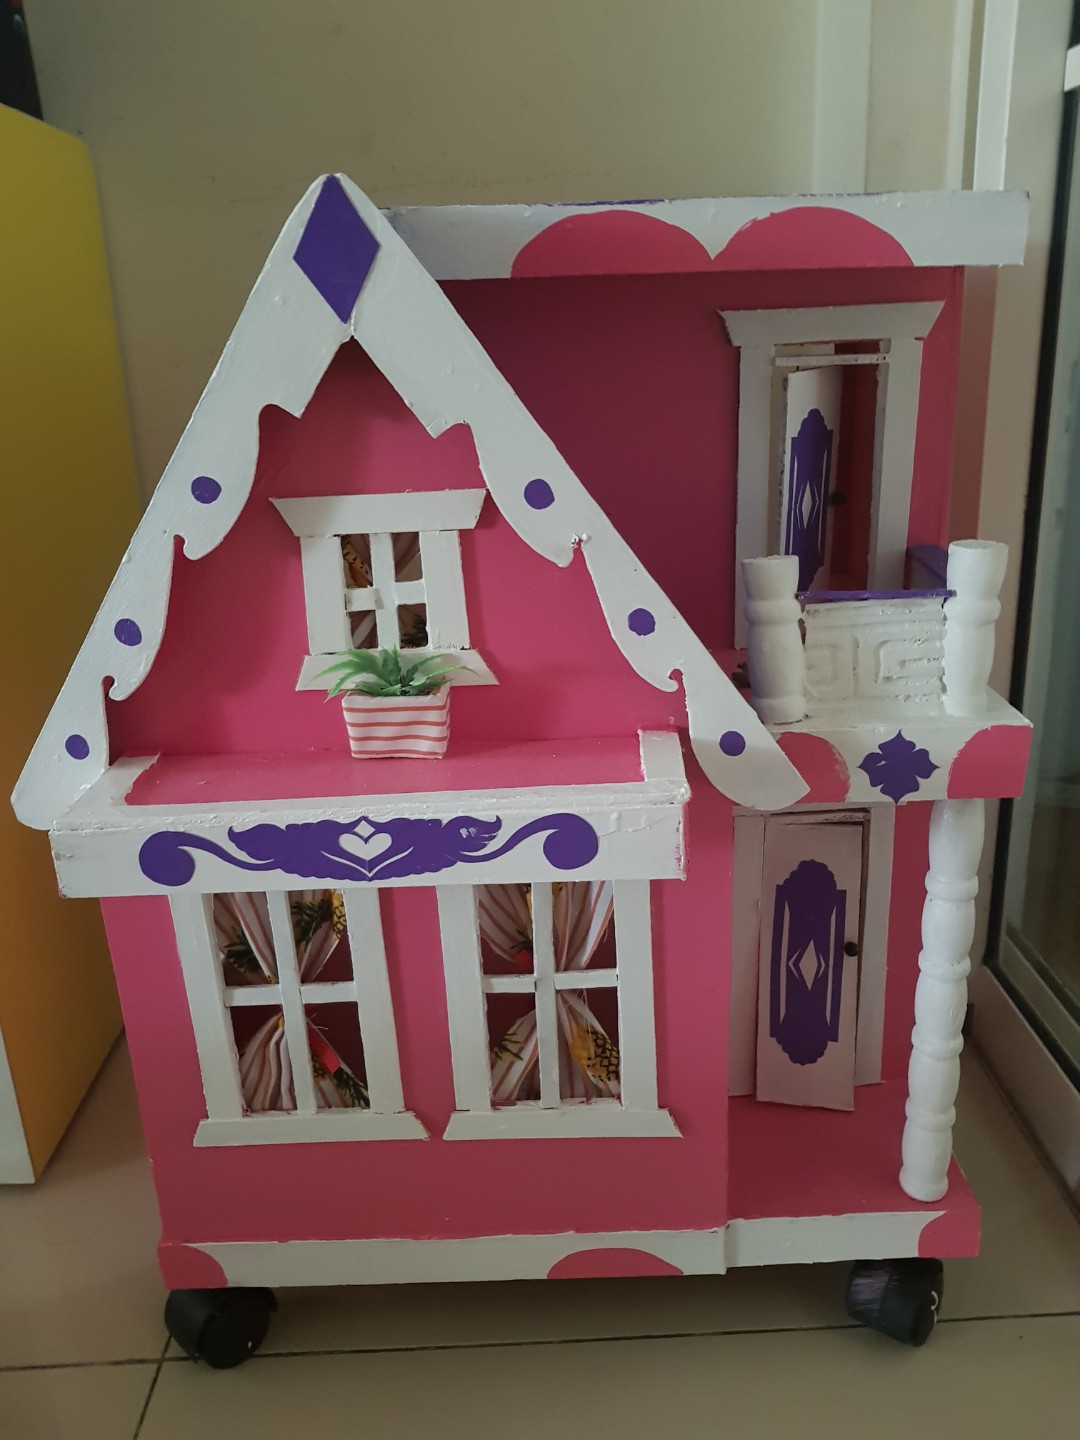 Rumah Barbie Besar Free Perabotan Toys Collectibles Toys On 68cc6657d5